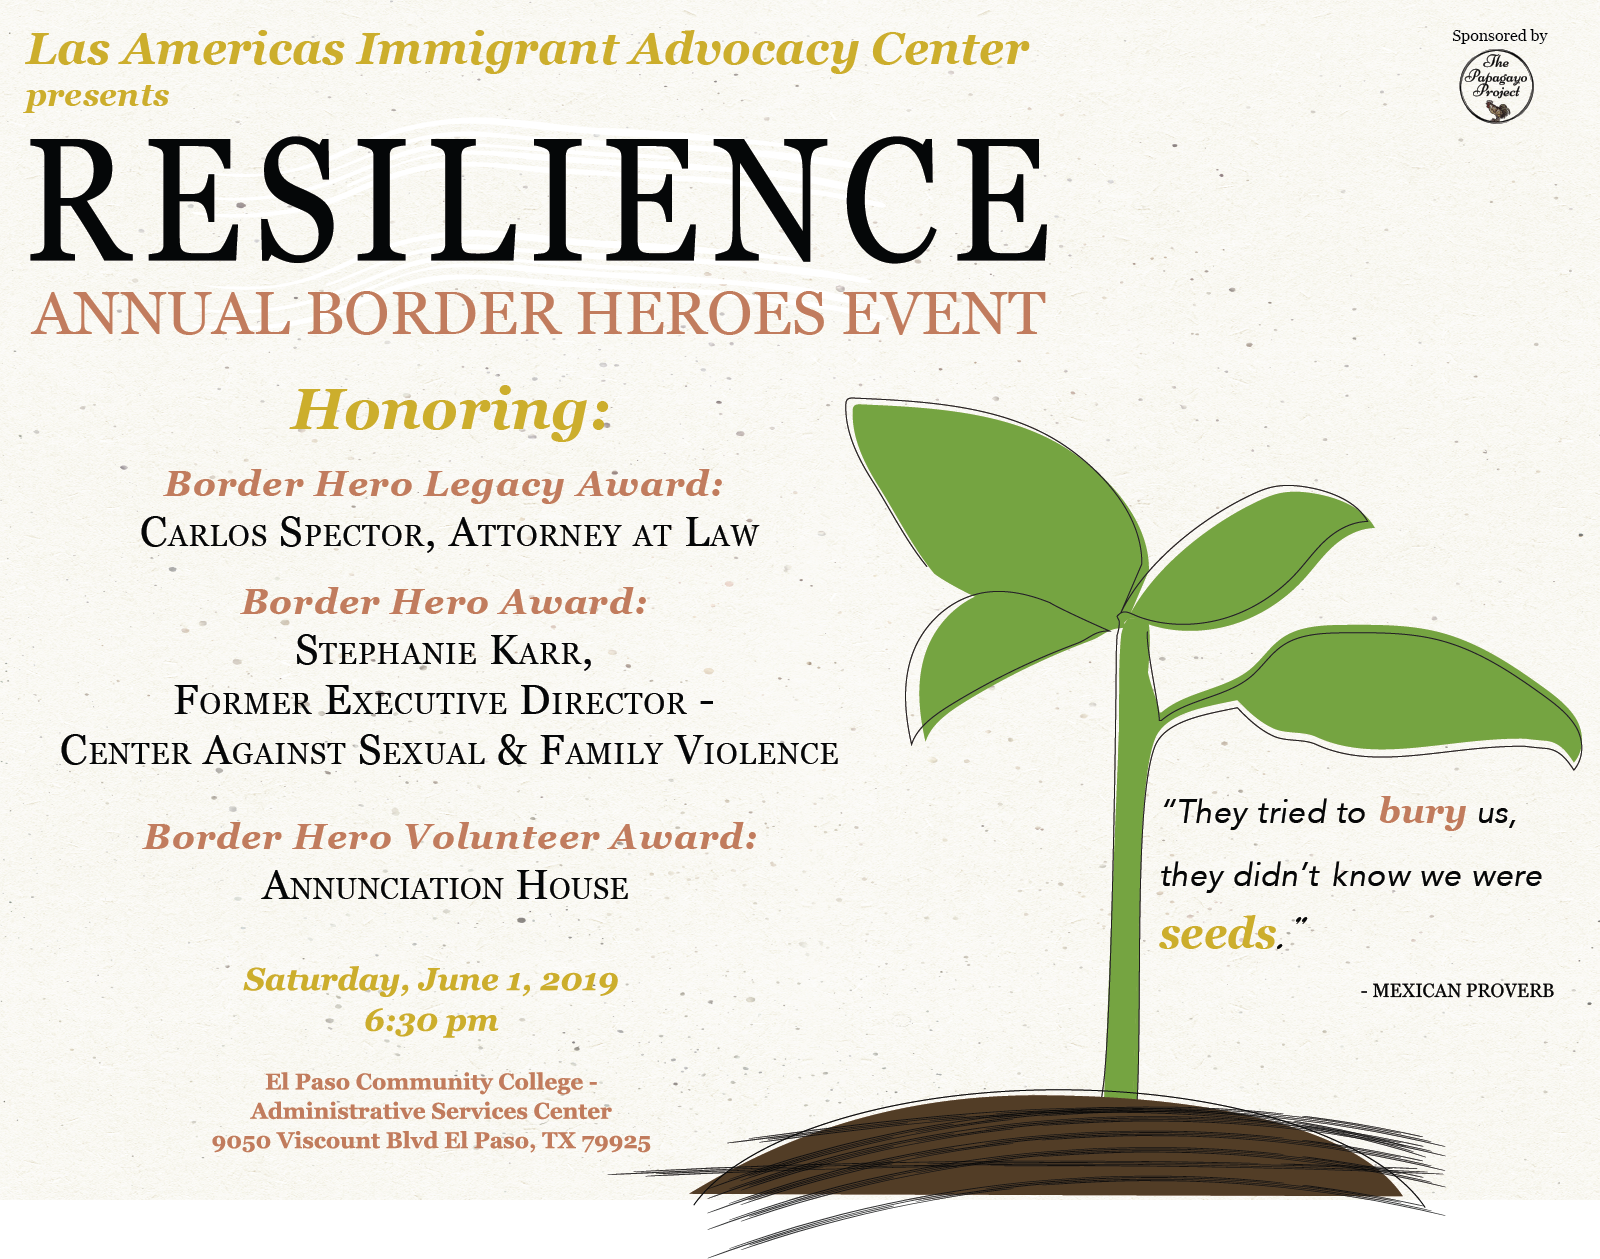 BORDER HEROES - Border Heroes is Las Americas Immigrant Advocacy Center's largest fundraiser of the year, and honors exceptional advocates in the El Paso border community.